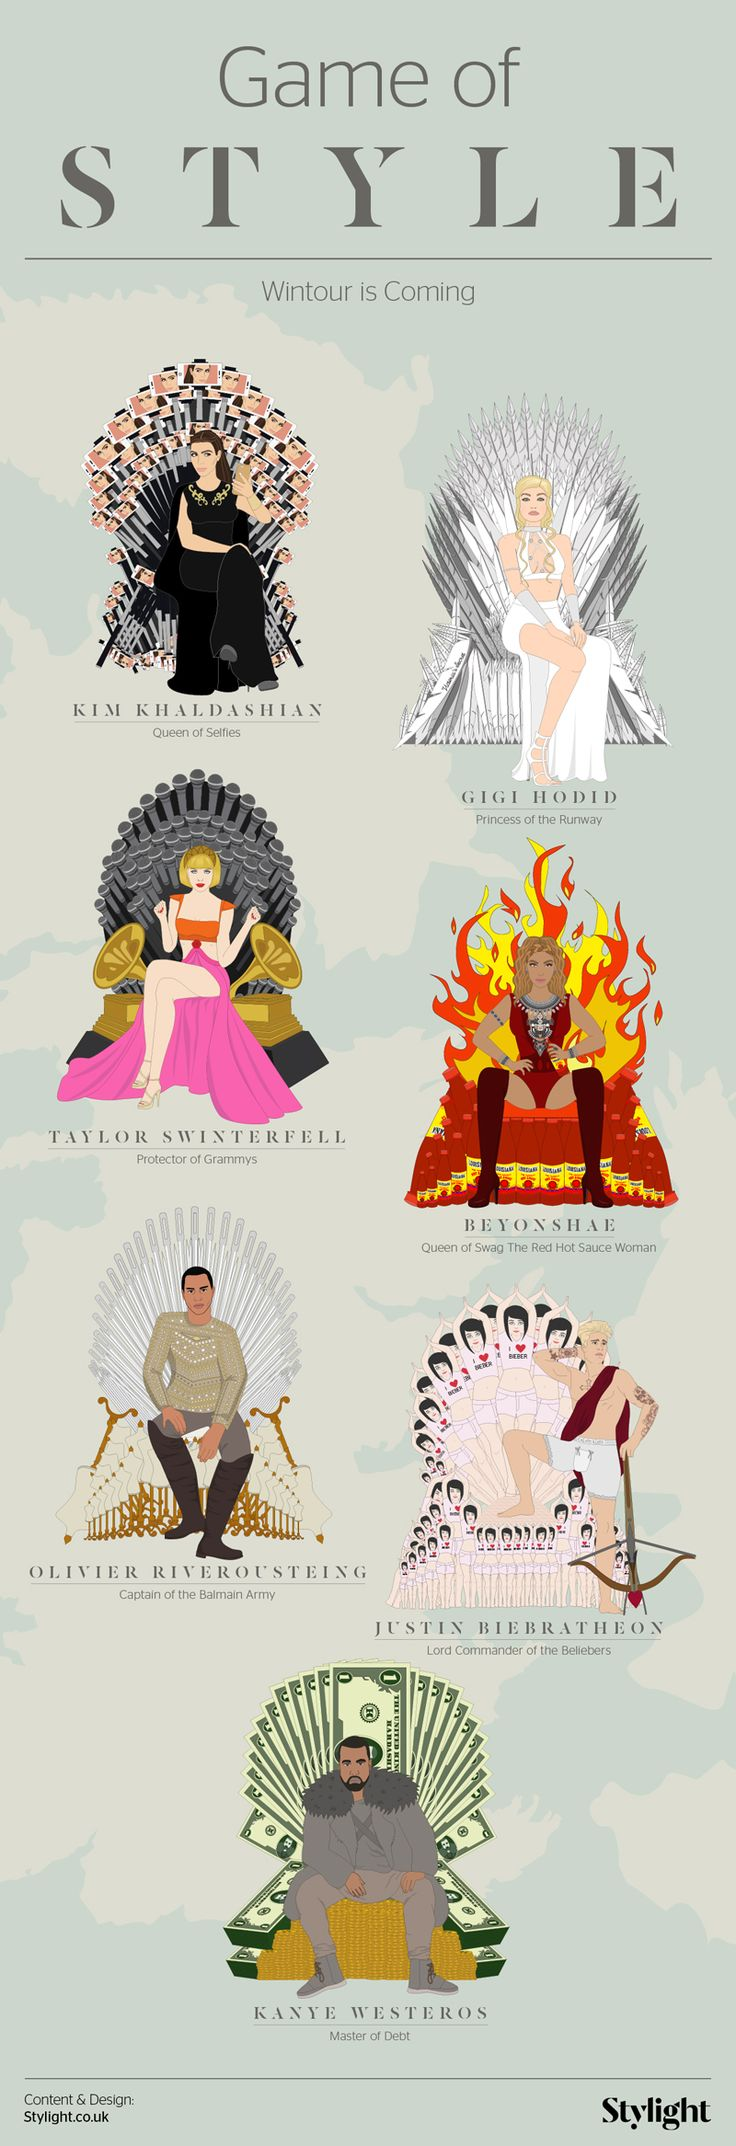 Game of Style #infographic #Celebrities #Entertainment